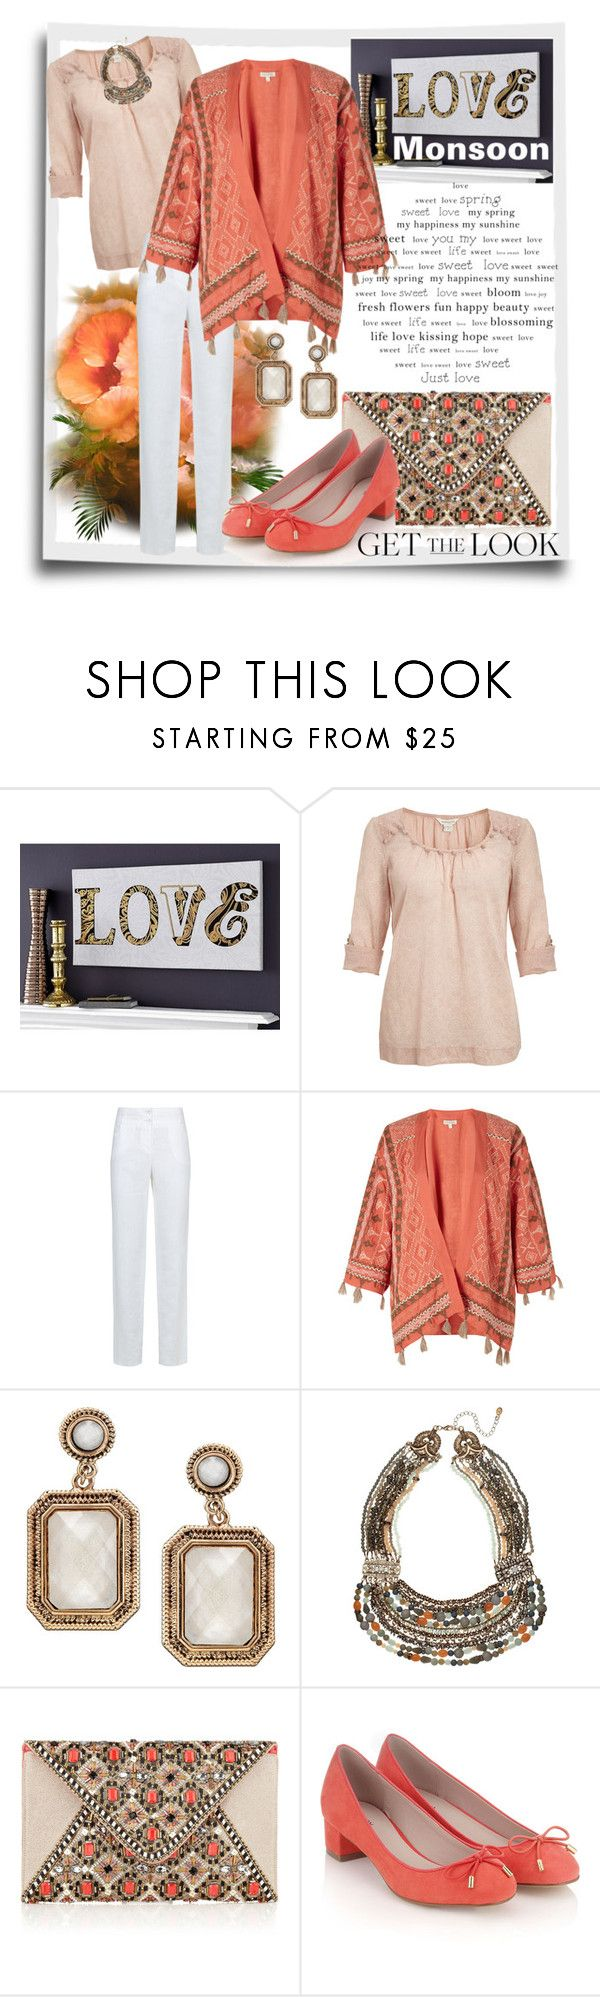 """""""Monsoon fashion"""" by fantasiegirl ❤ liked on Polyvore featuring Monsoon"""